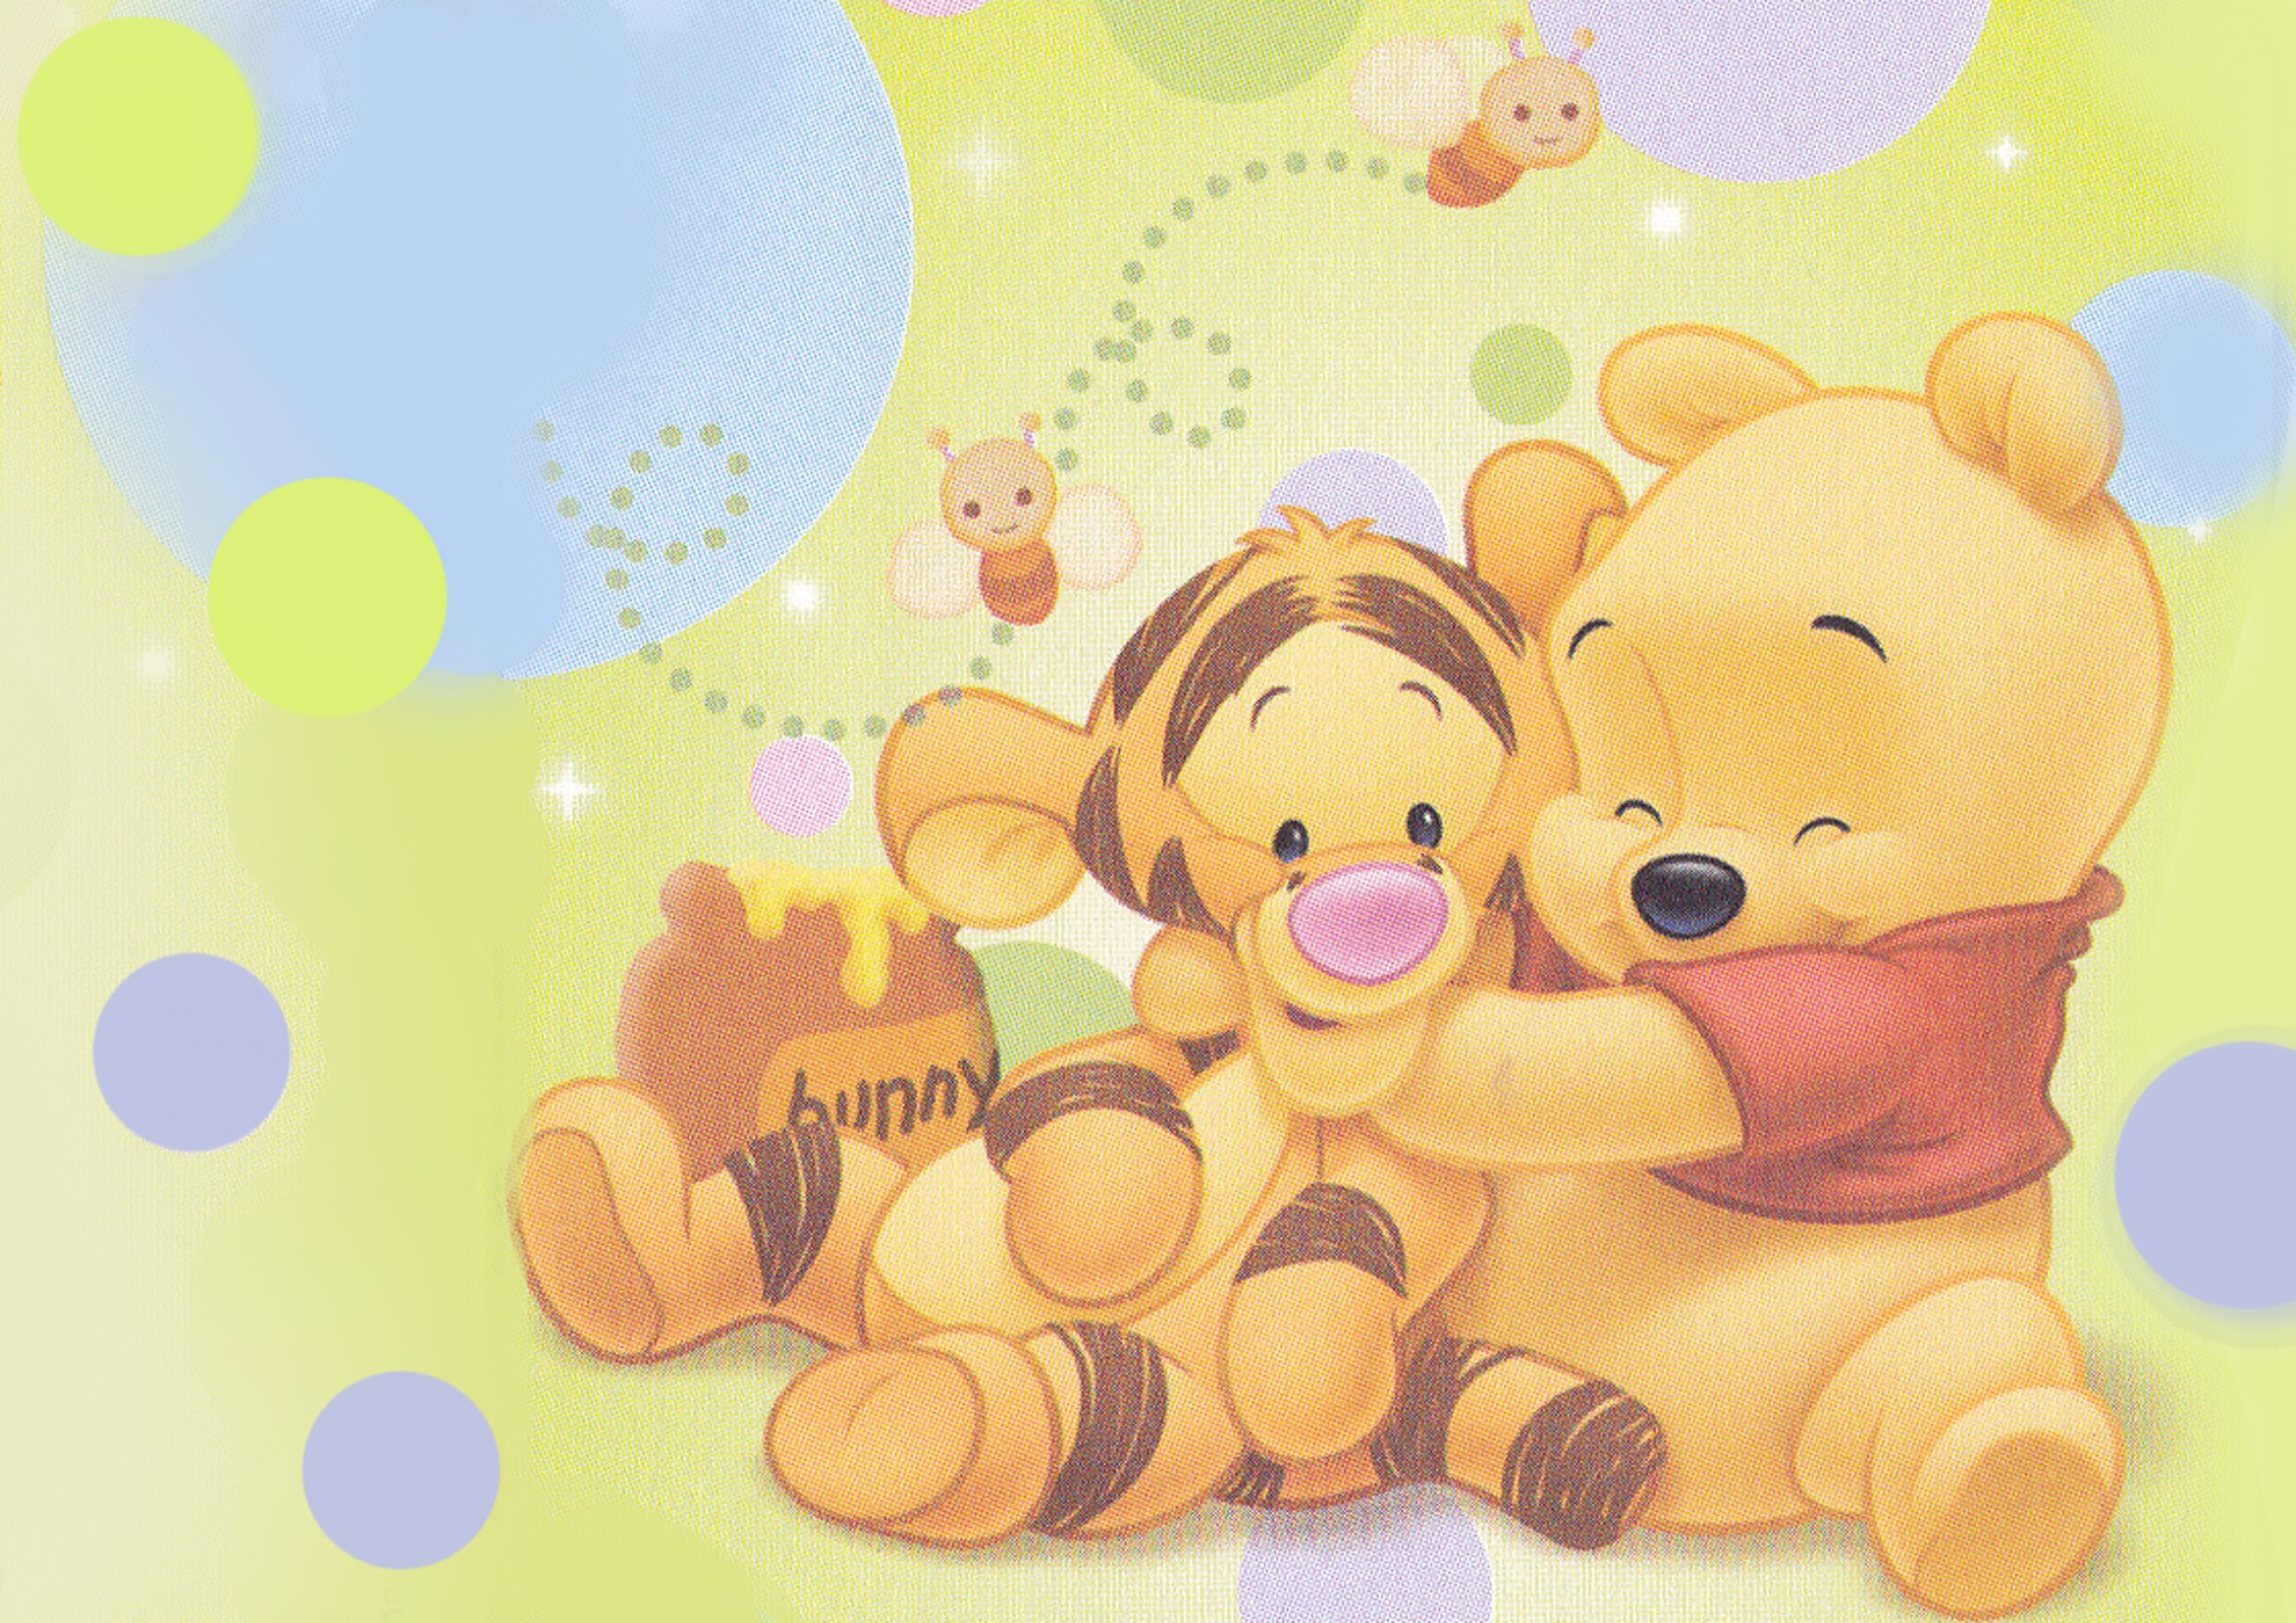 baby pooh images baby pooh wallpaper hd wallpaper and